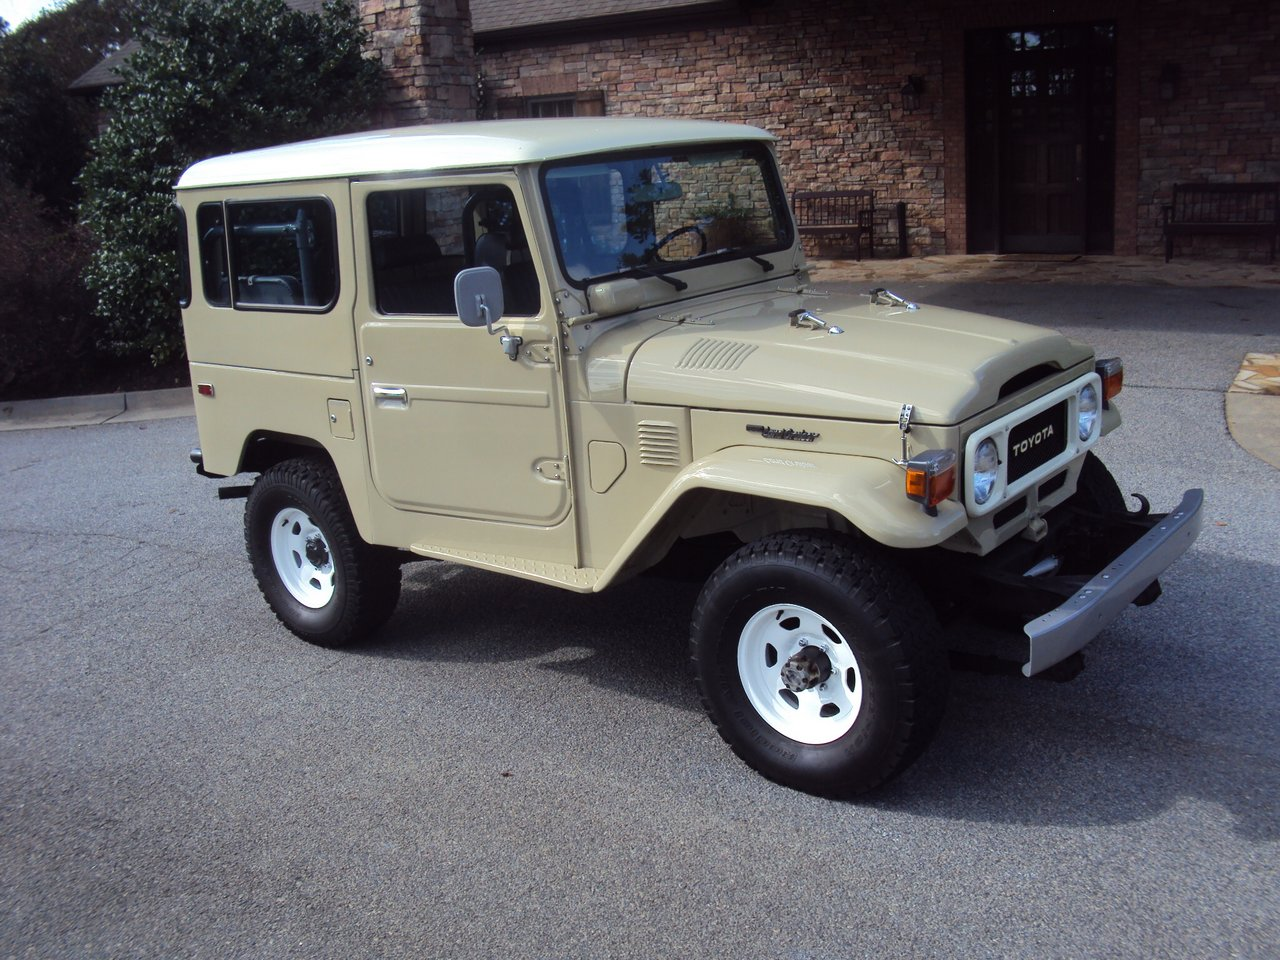 1982 Toyota Land Cruiser FJ40 – full frame-off restoration